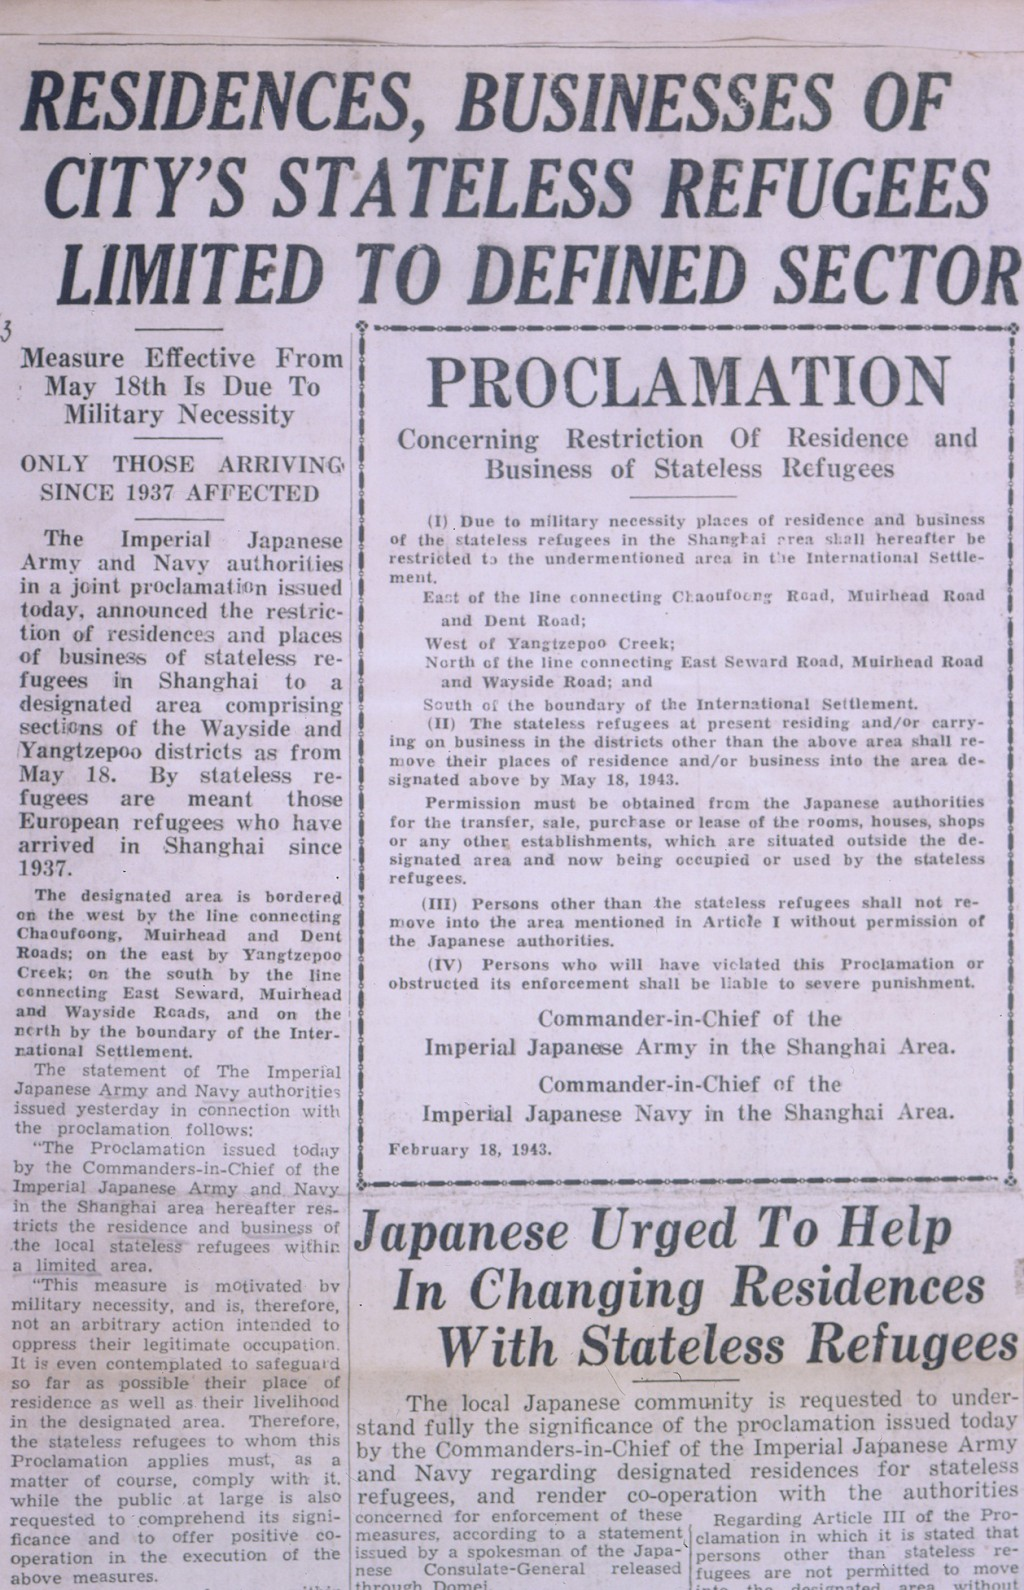 Proclamation of restricted zone in Shanghai for refugees [LCID: 20024xqj]